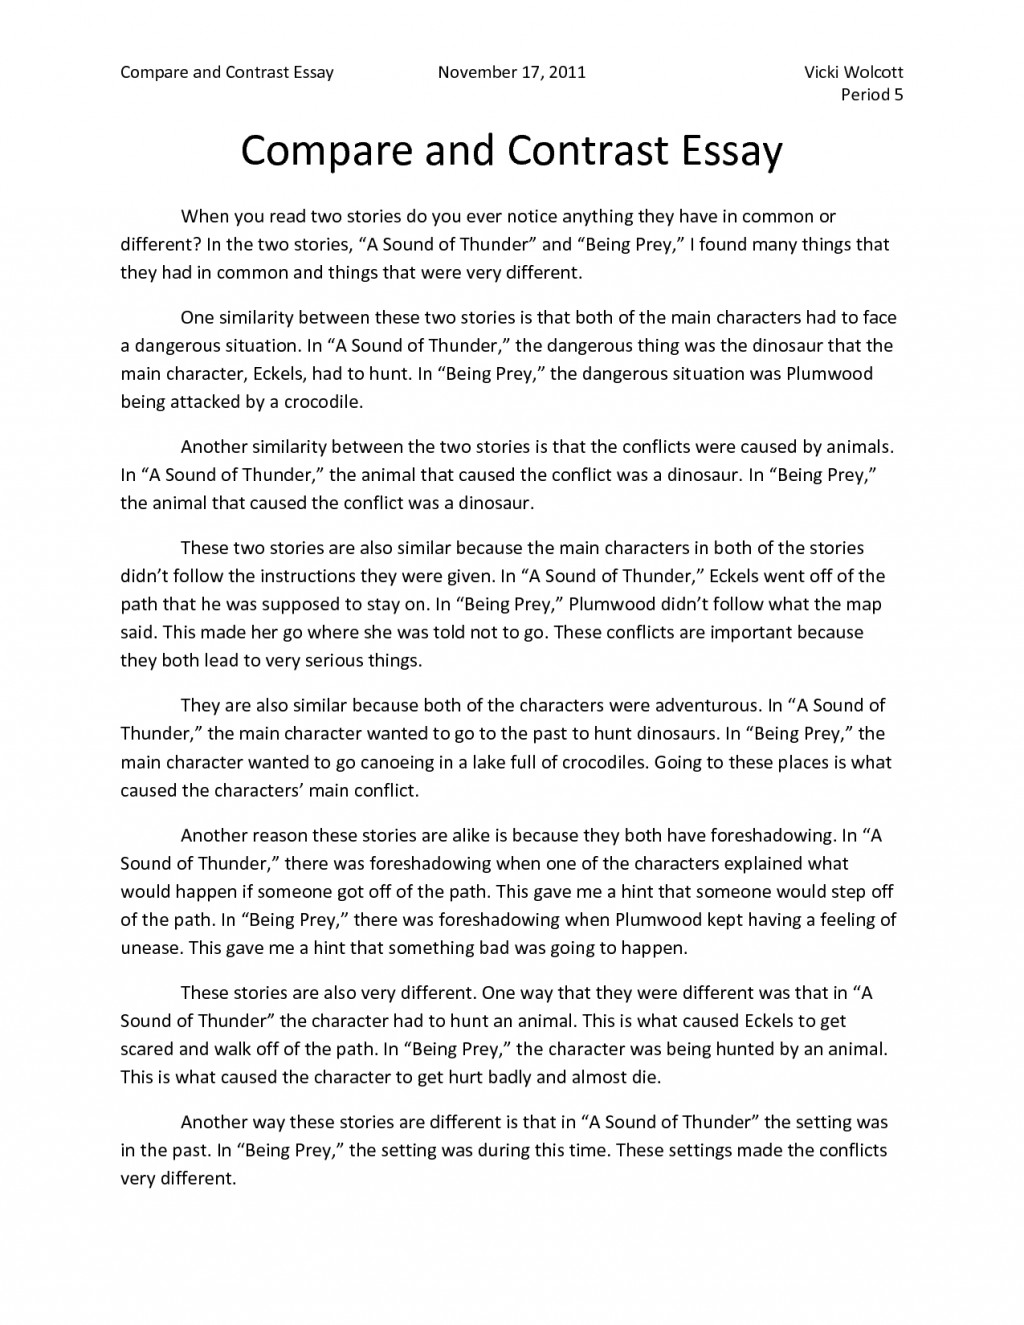 003 Perfect Essays Compare And Contrast Essay Introduction Example How To Write College Striking Examples For Students Topics 7th Grade Large